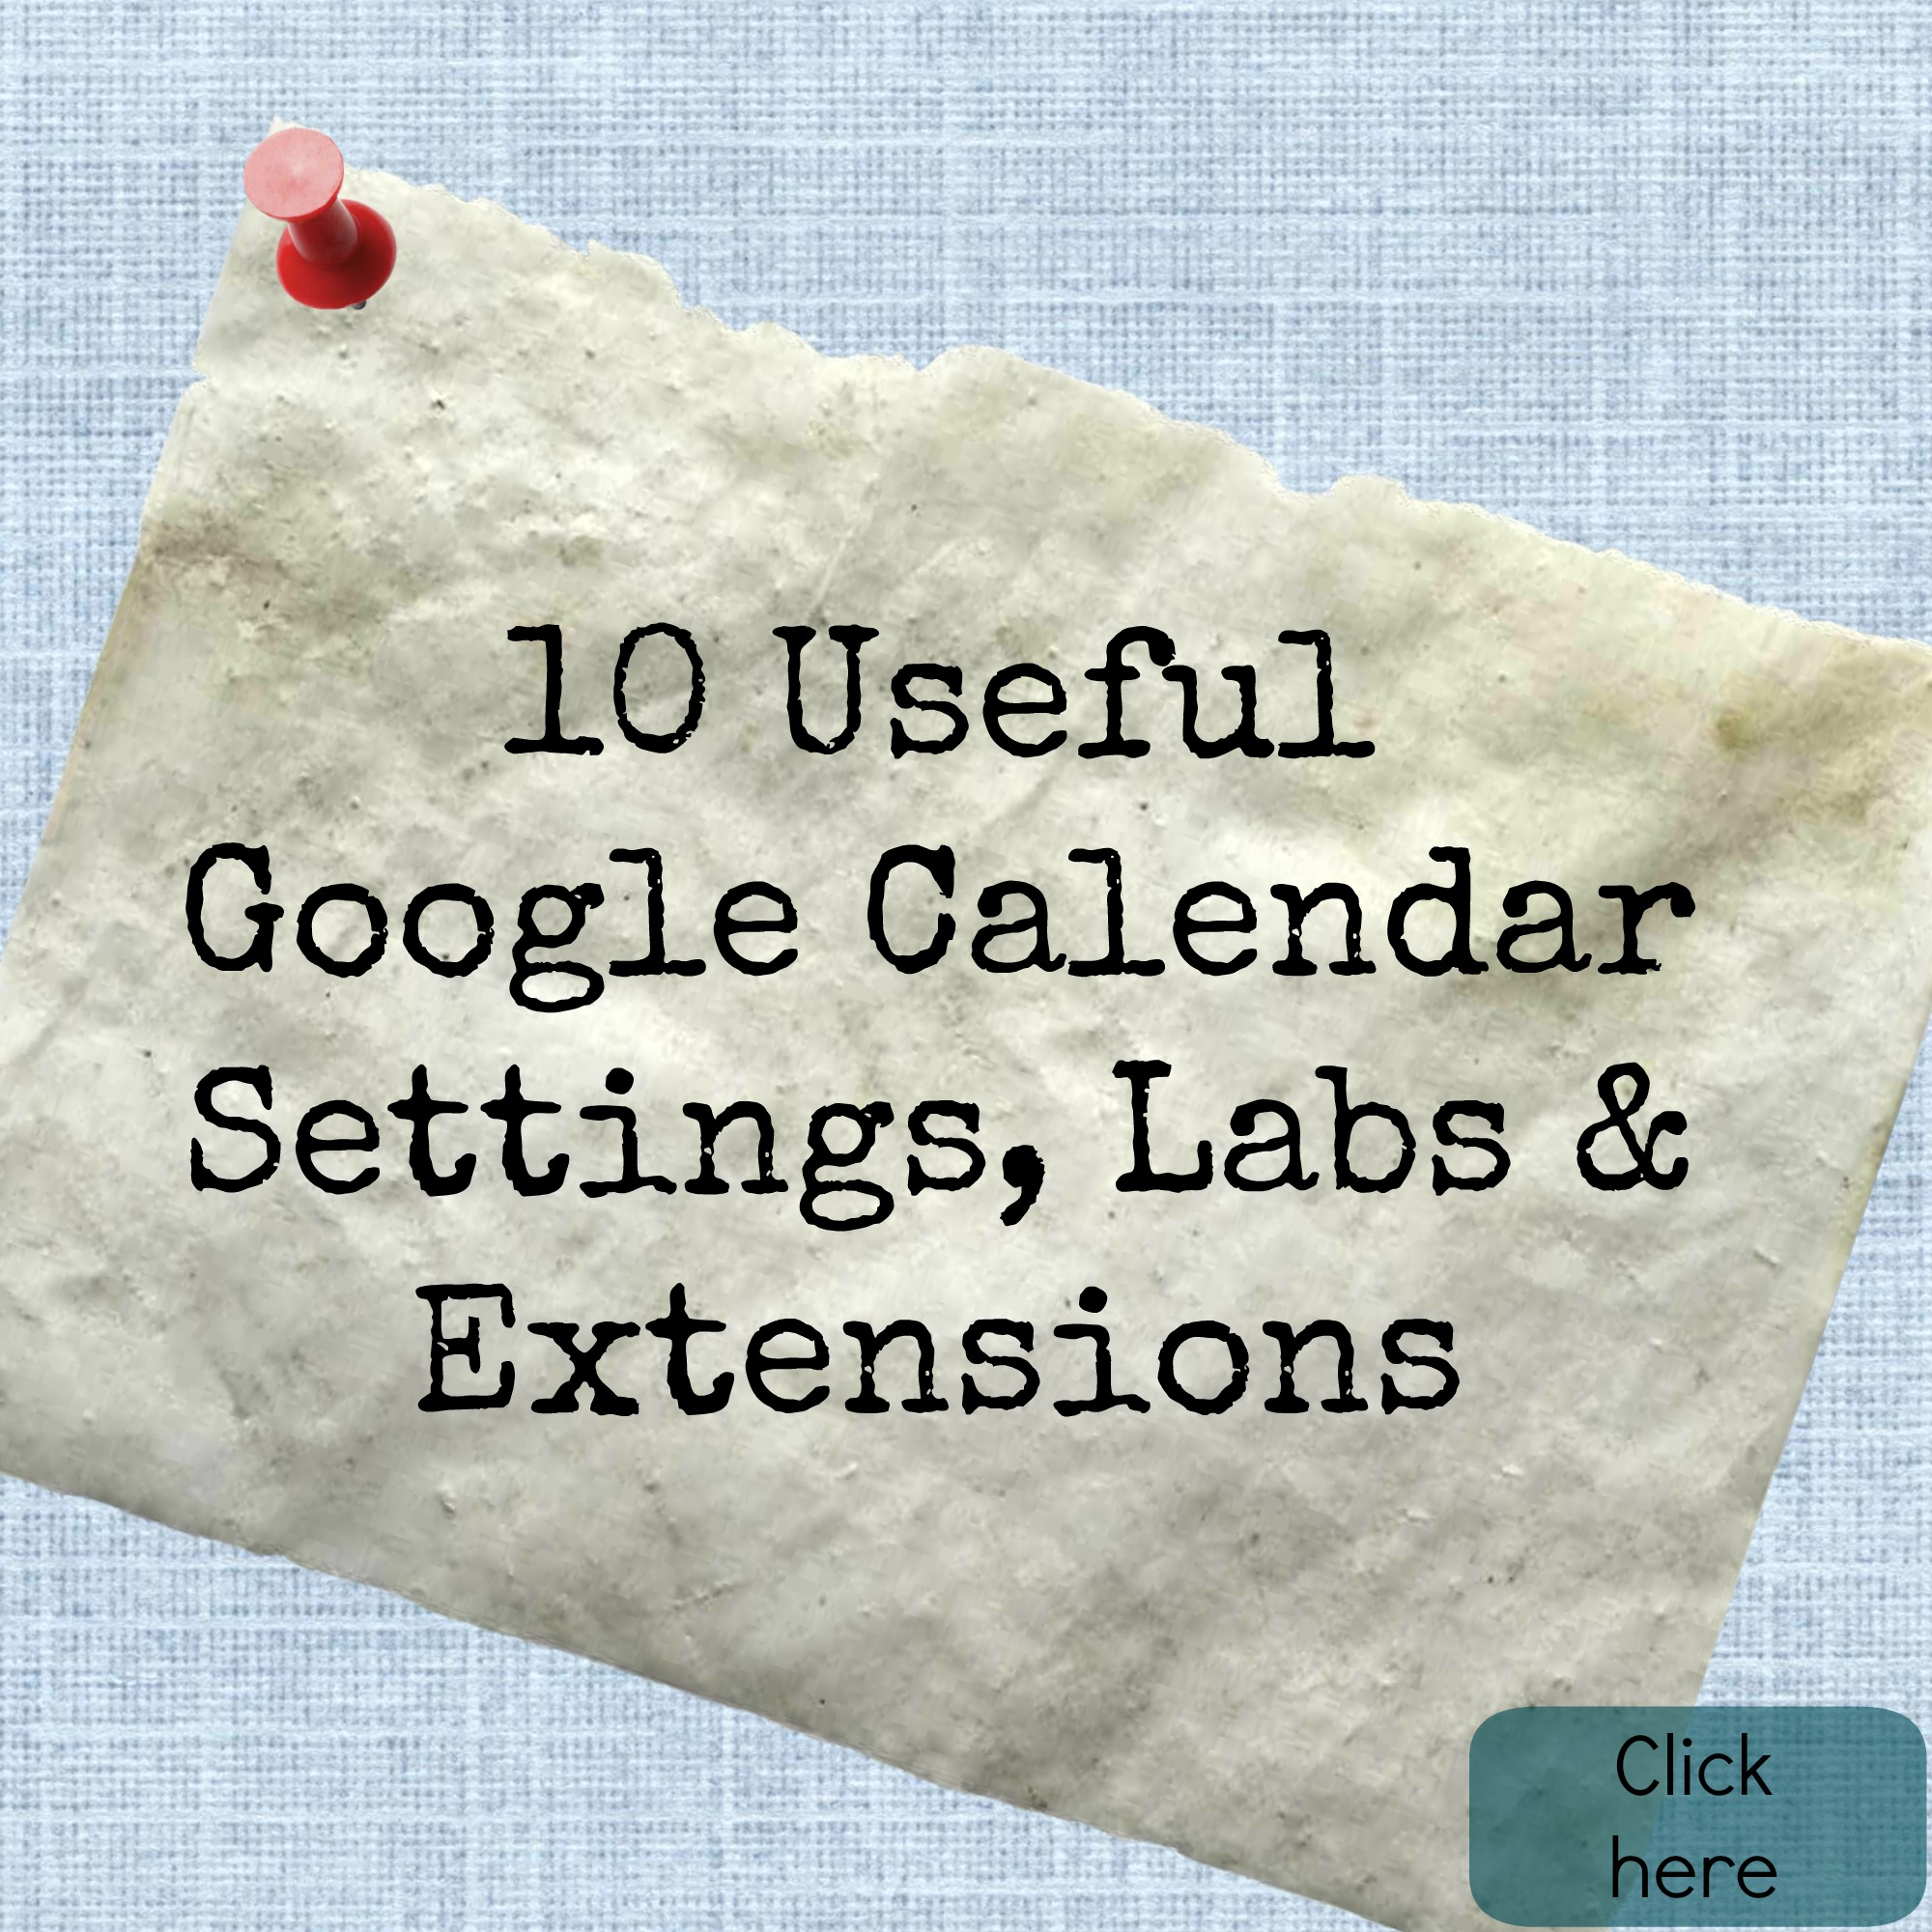 10 Useful Google Calendar Settings, Labs & Extensions